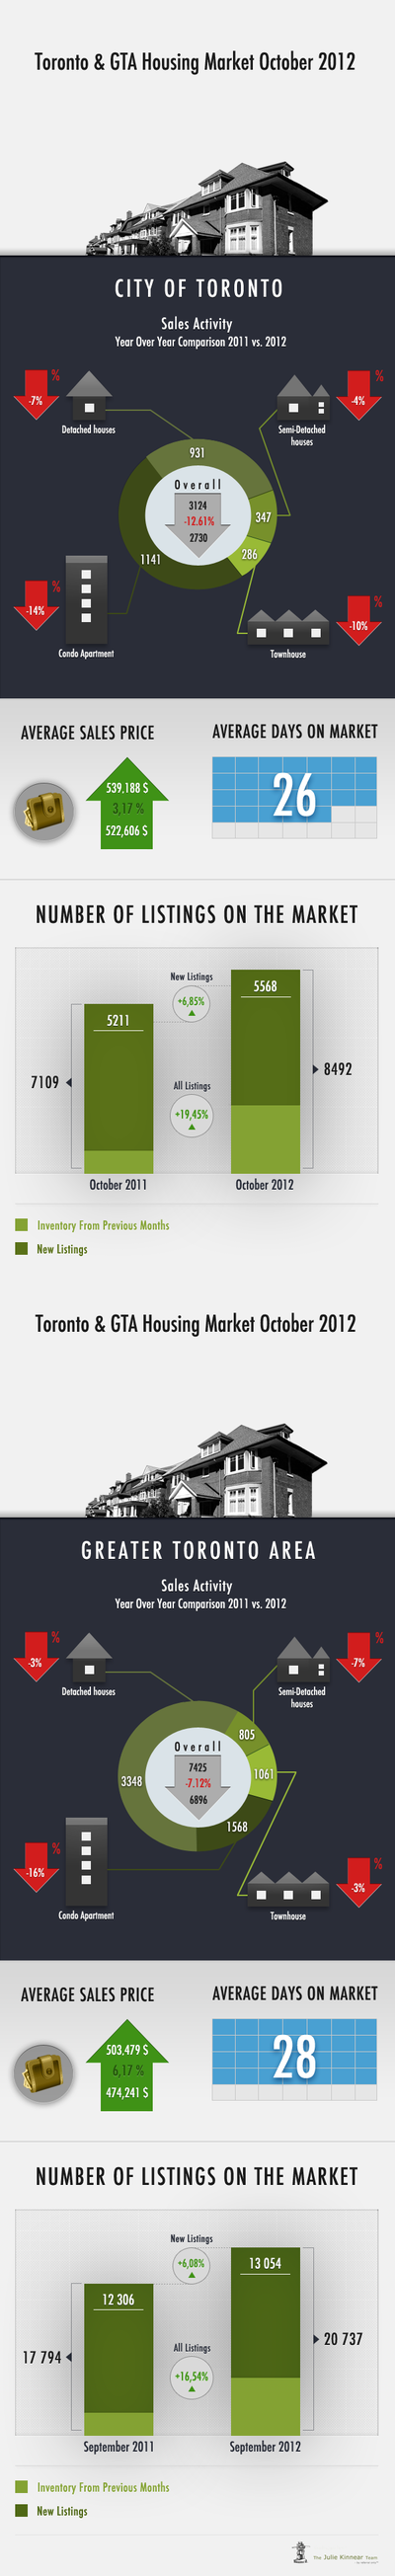 julie kinnear infographic october 2012 final